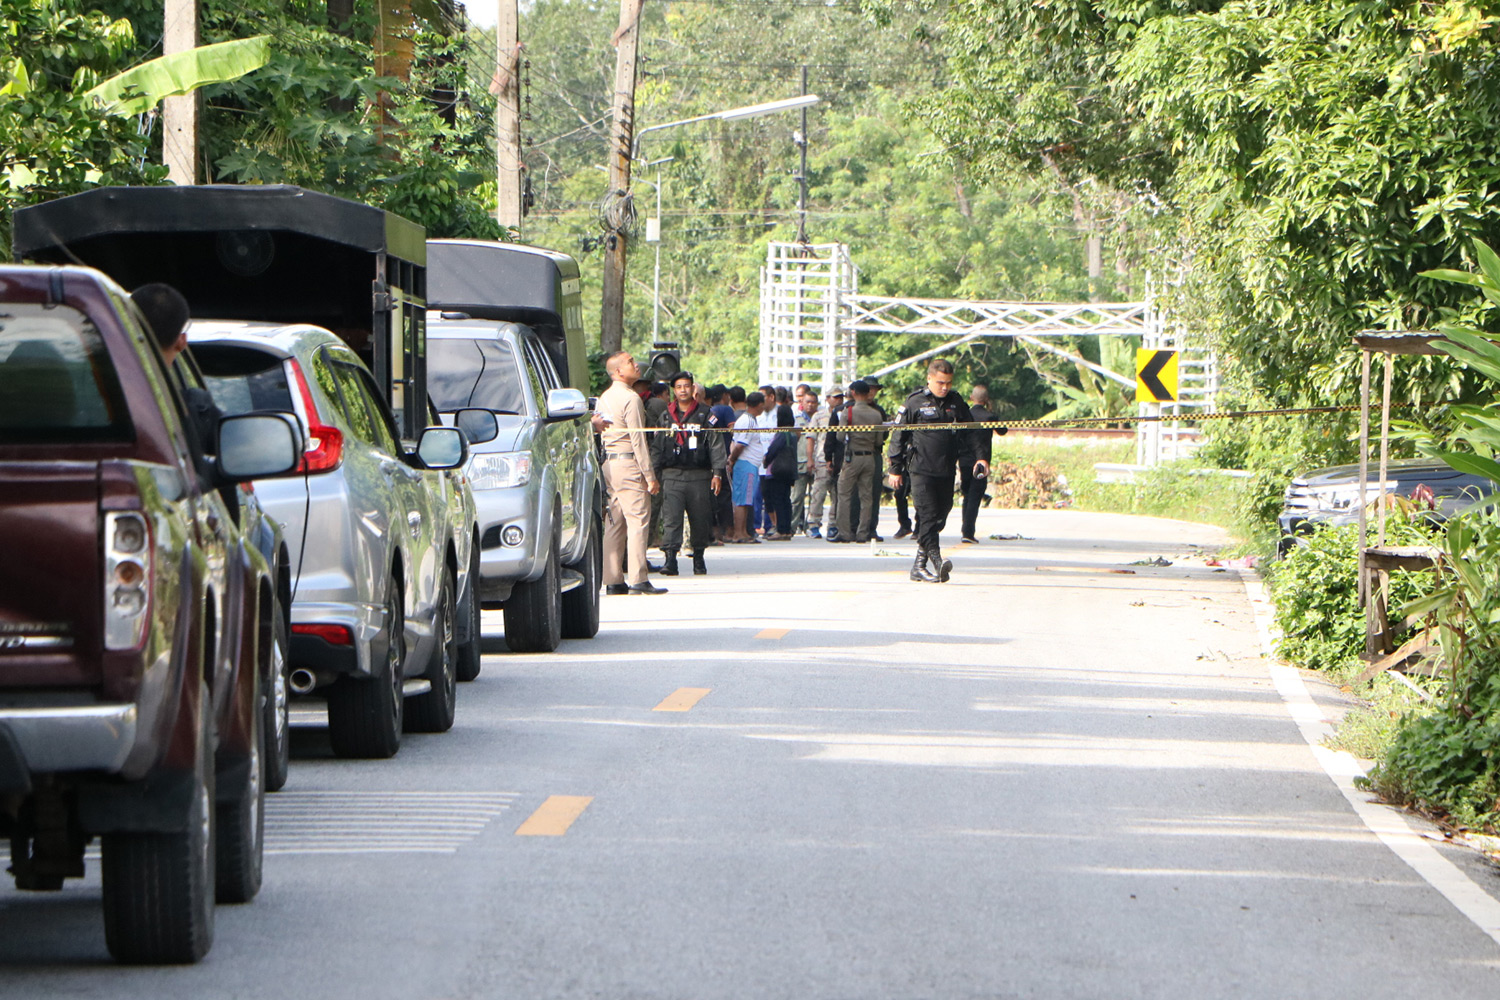 Security officers cordon off a section of Huruparoh-Chulabhorn Road in tambon Tanyongmas of Rangae district in Narathiwat following the fatal shooting on a couple by two men on Saturday. (Photo by Waedao Harai)